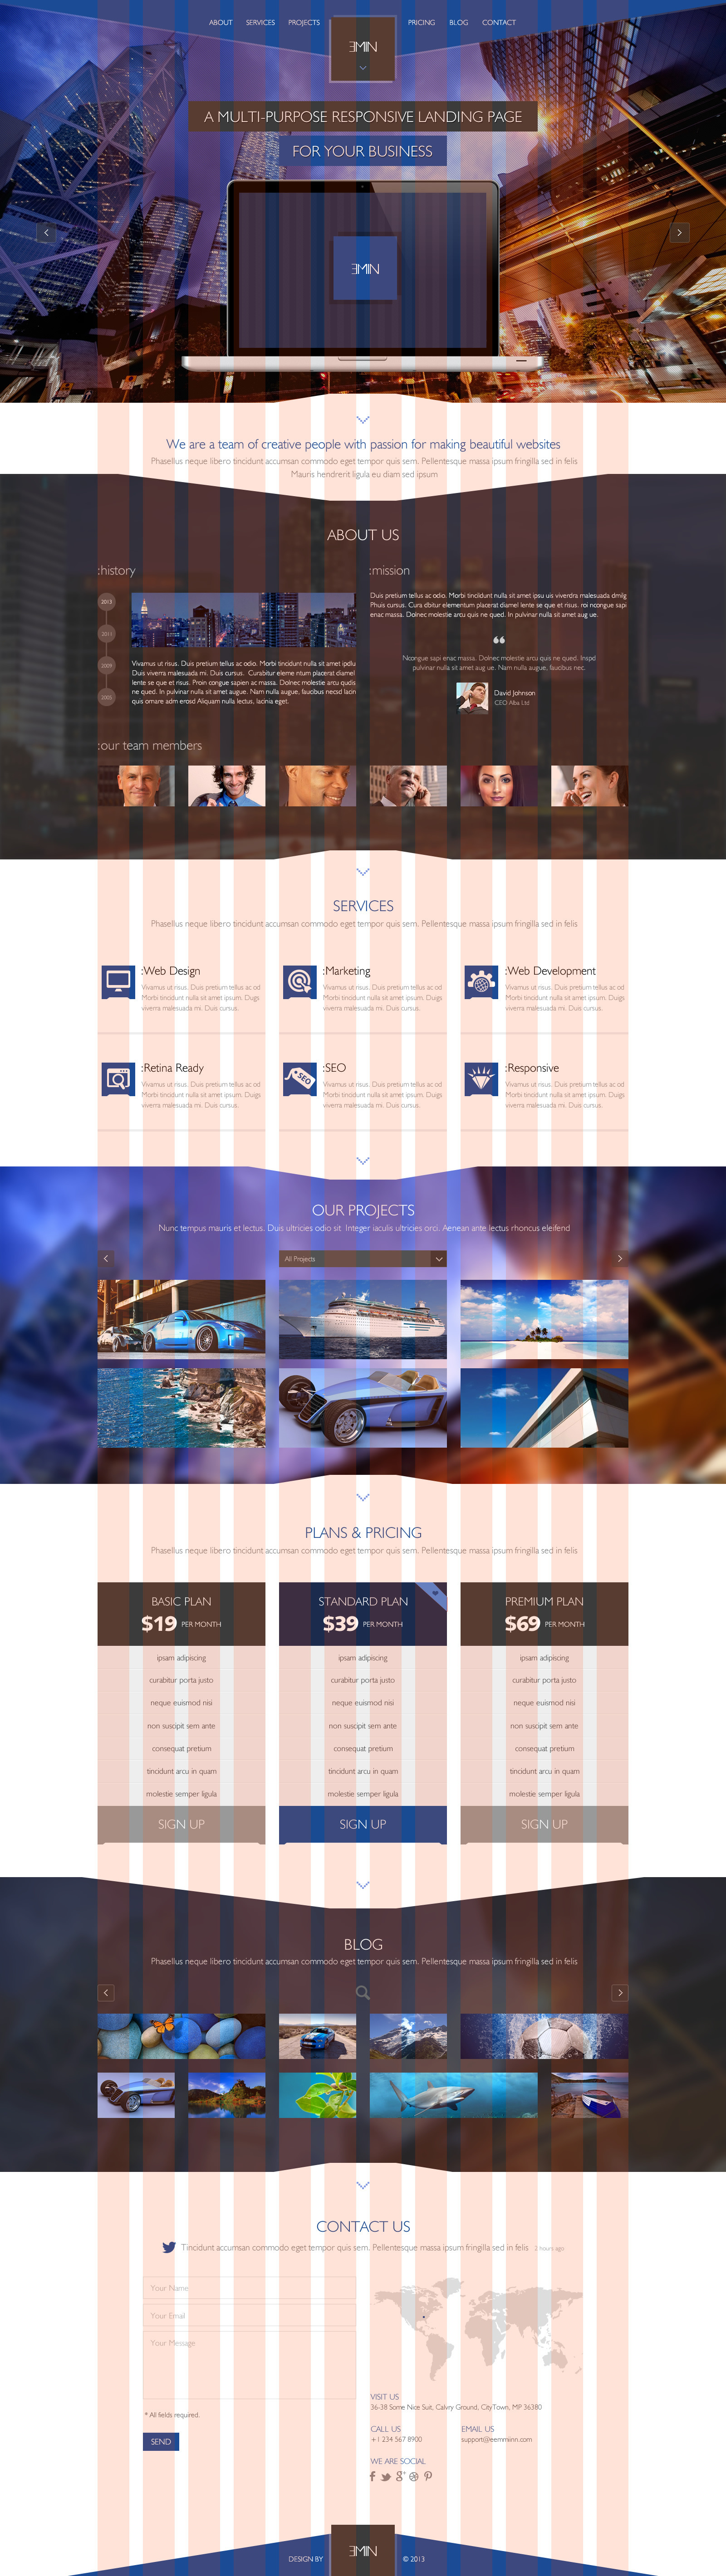 Emin - Multi-Purpose PSD Landing Page